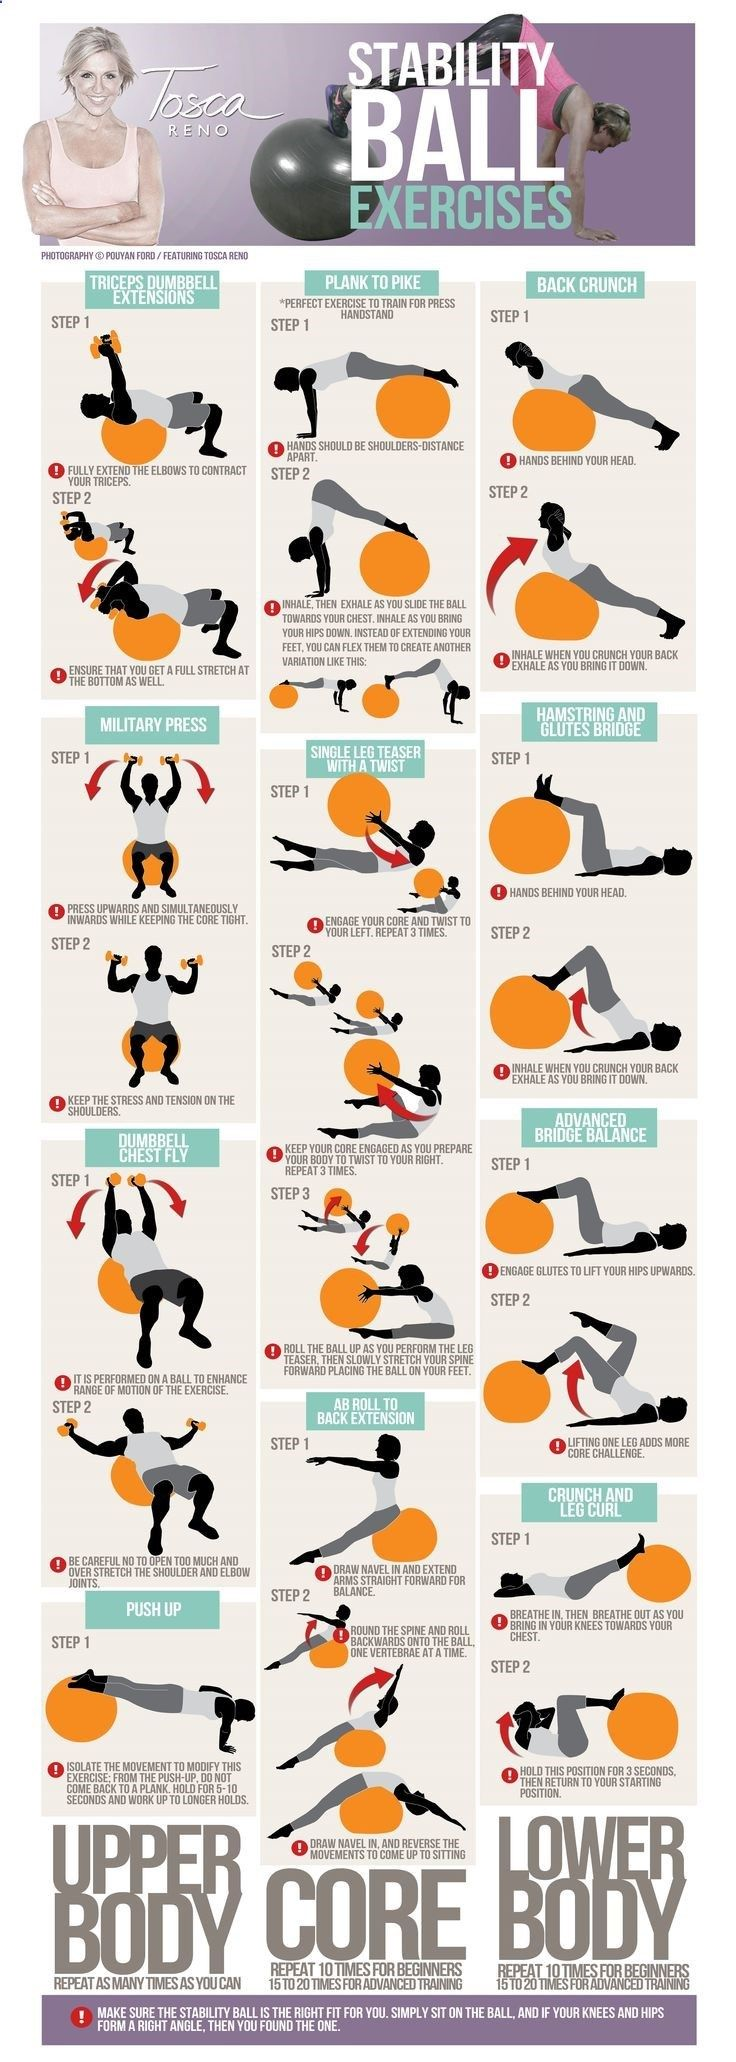 See more here ► www.youtube.com/... Tags: how to lose male belly fat, foods that lose belly fat, lose belly fat in 1 week - 11 Stability Ball Exercises to Enhance Your Body Shape #exercise #diet #workout #fitness #health